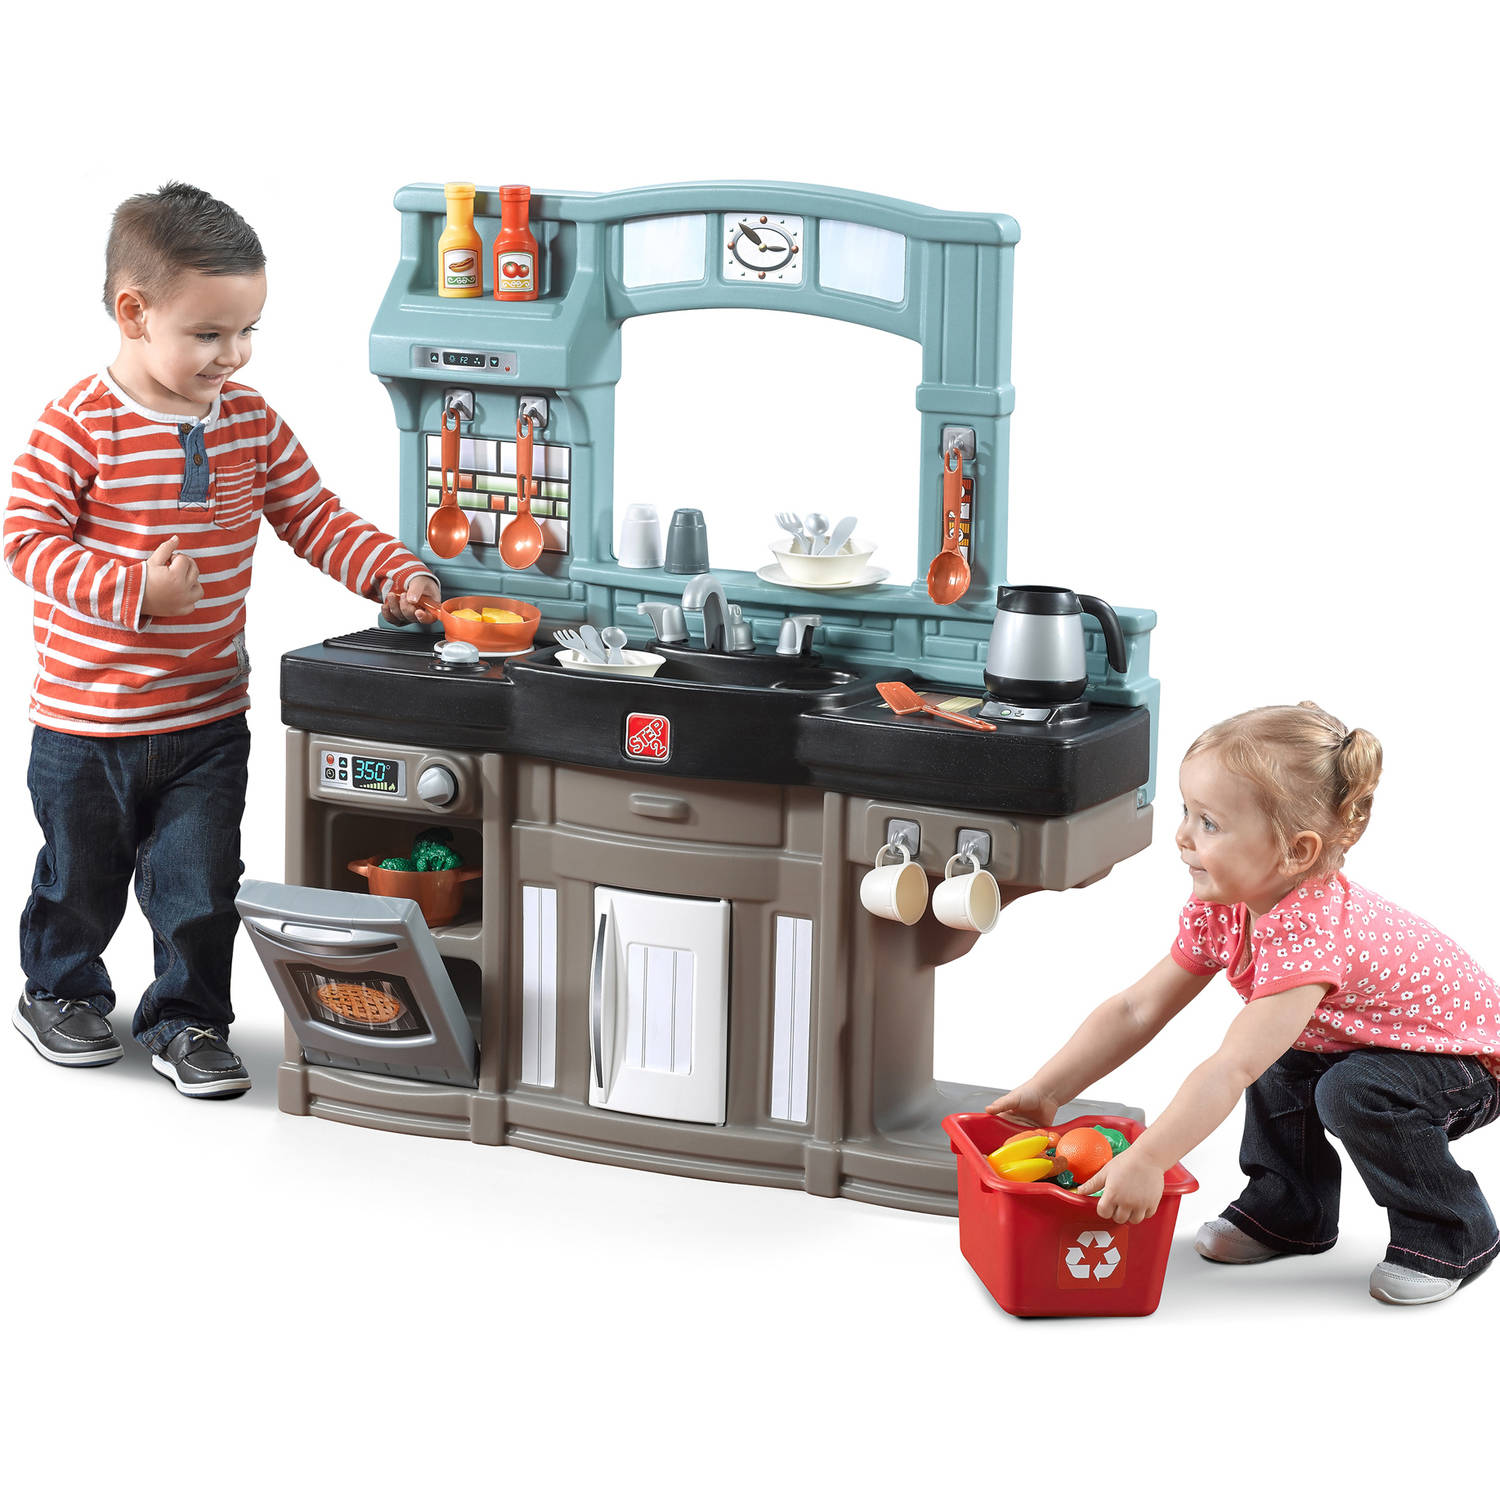 Step2 Best Chef's Play Kitchen with Accessory Set